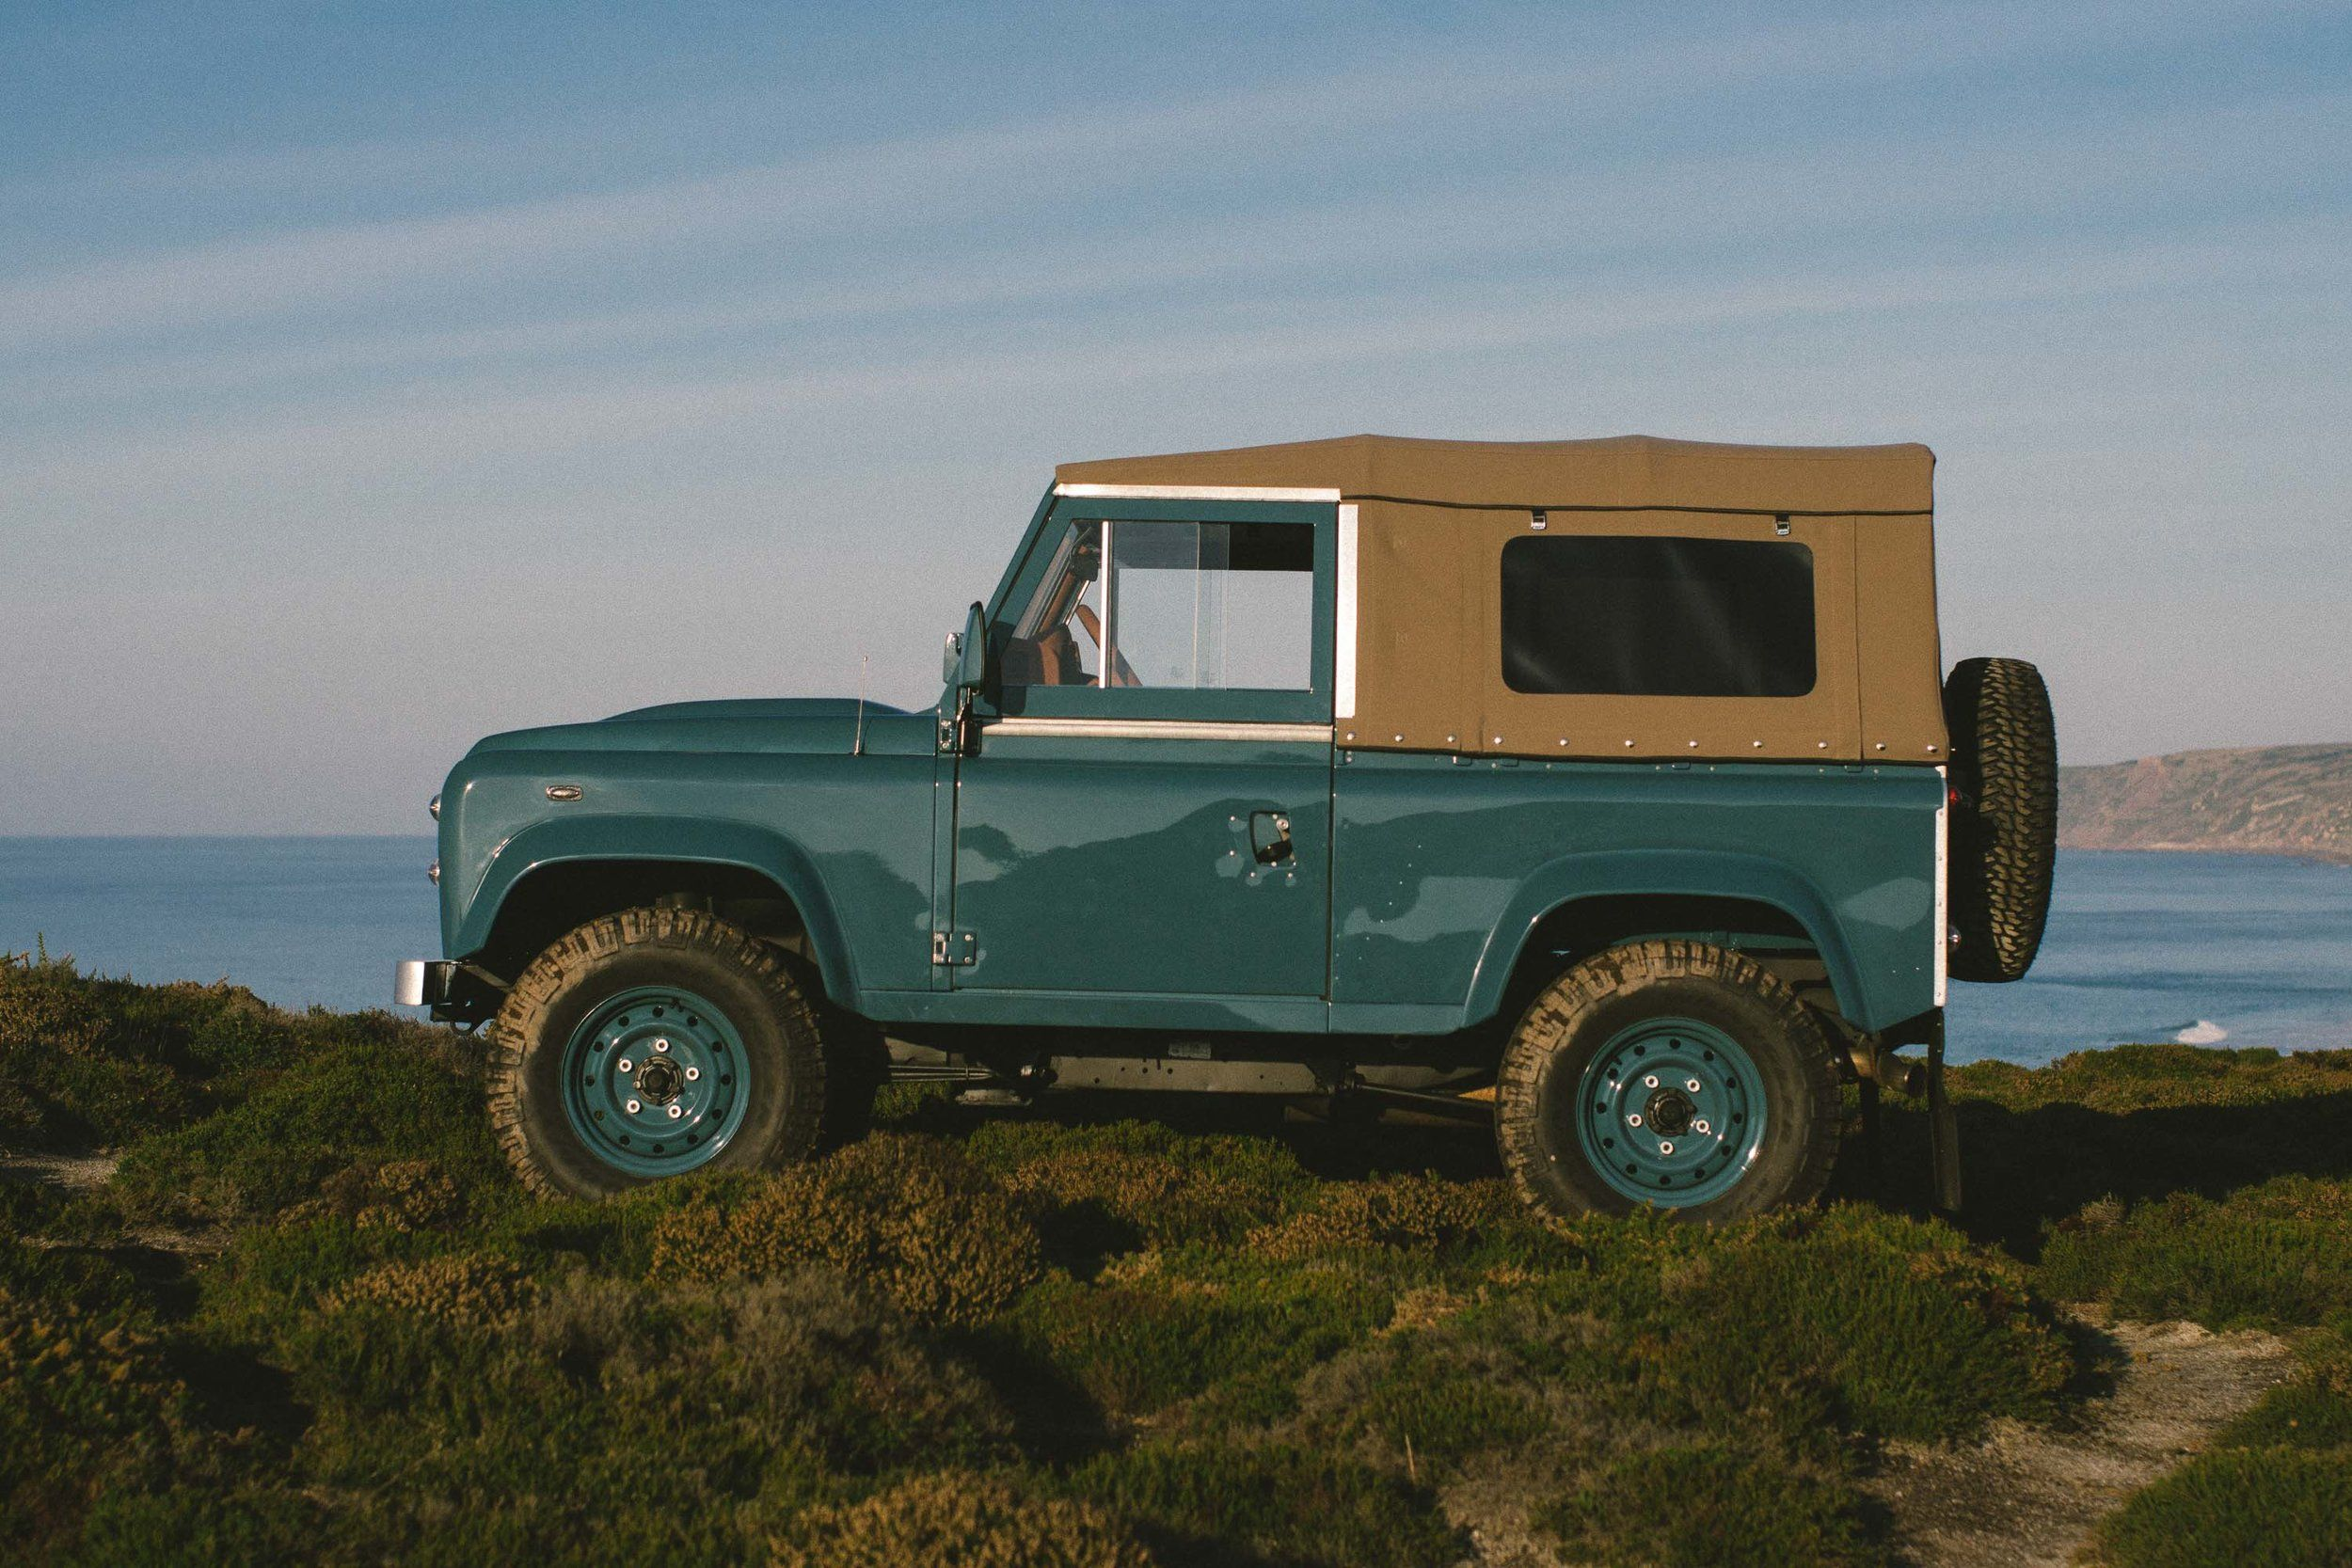 used next land dorset landrover previous defenders banner refurbished ltd rover vermont tatc for sale